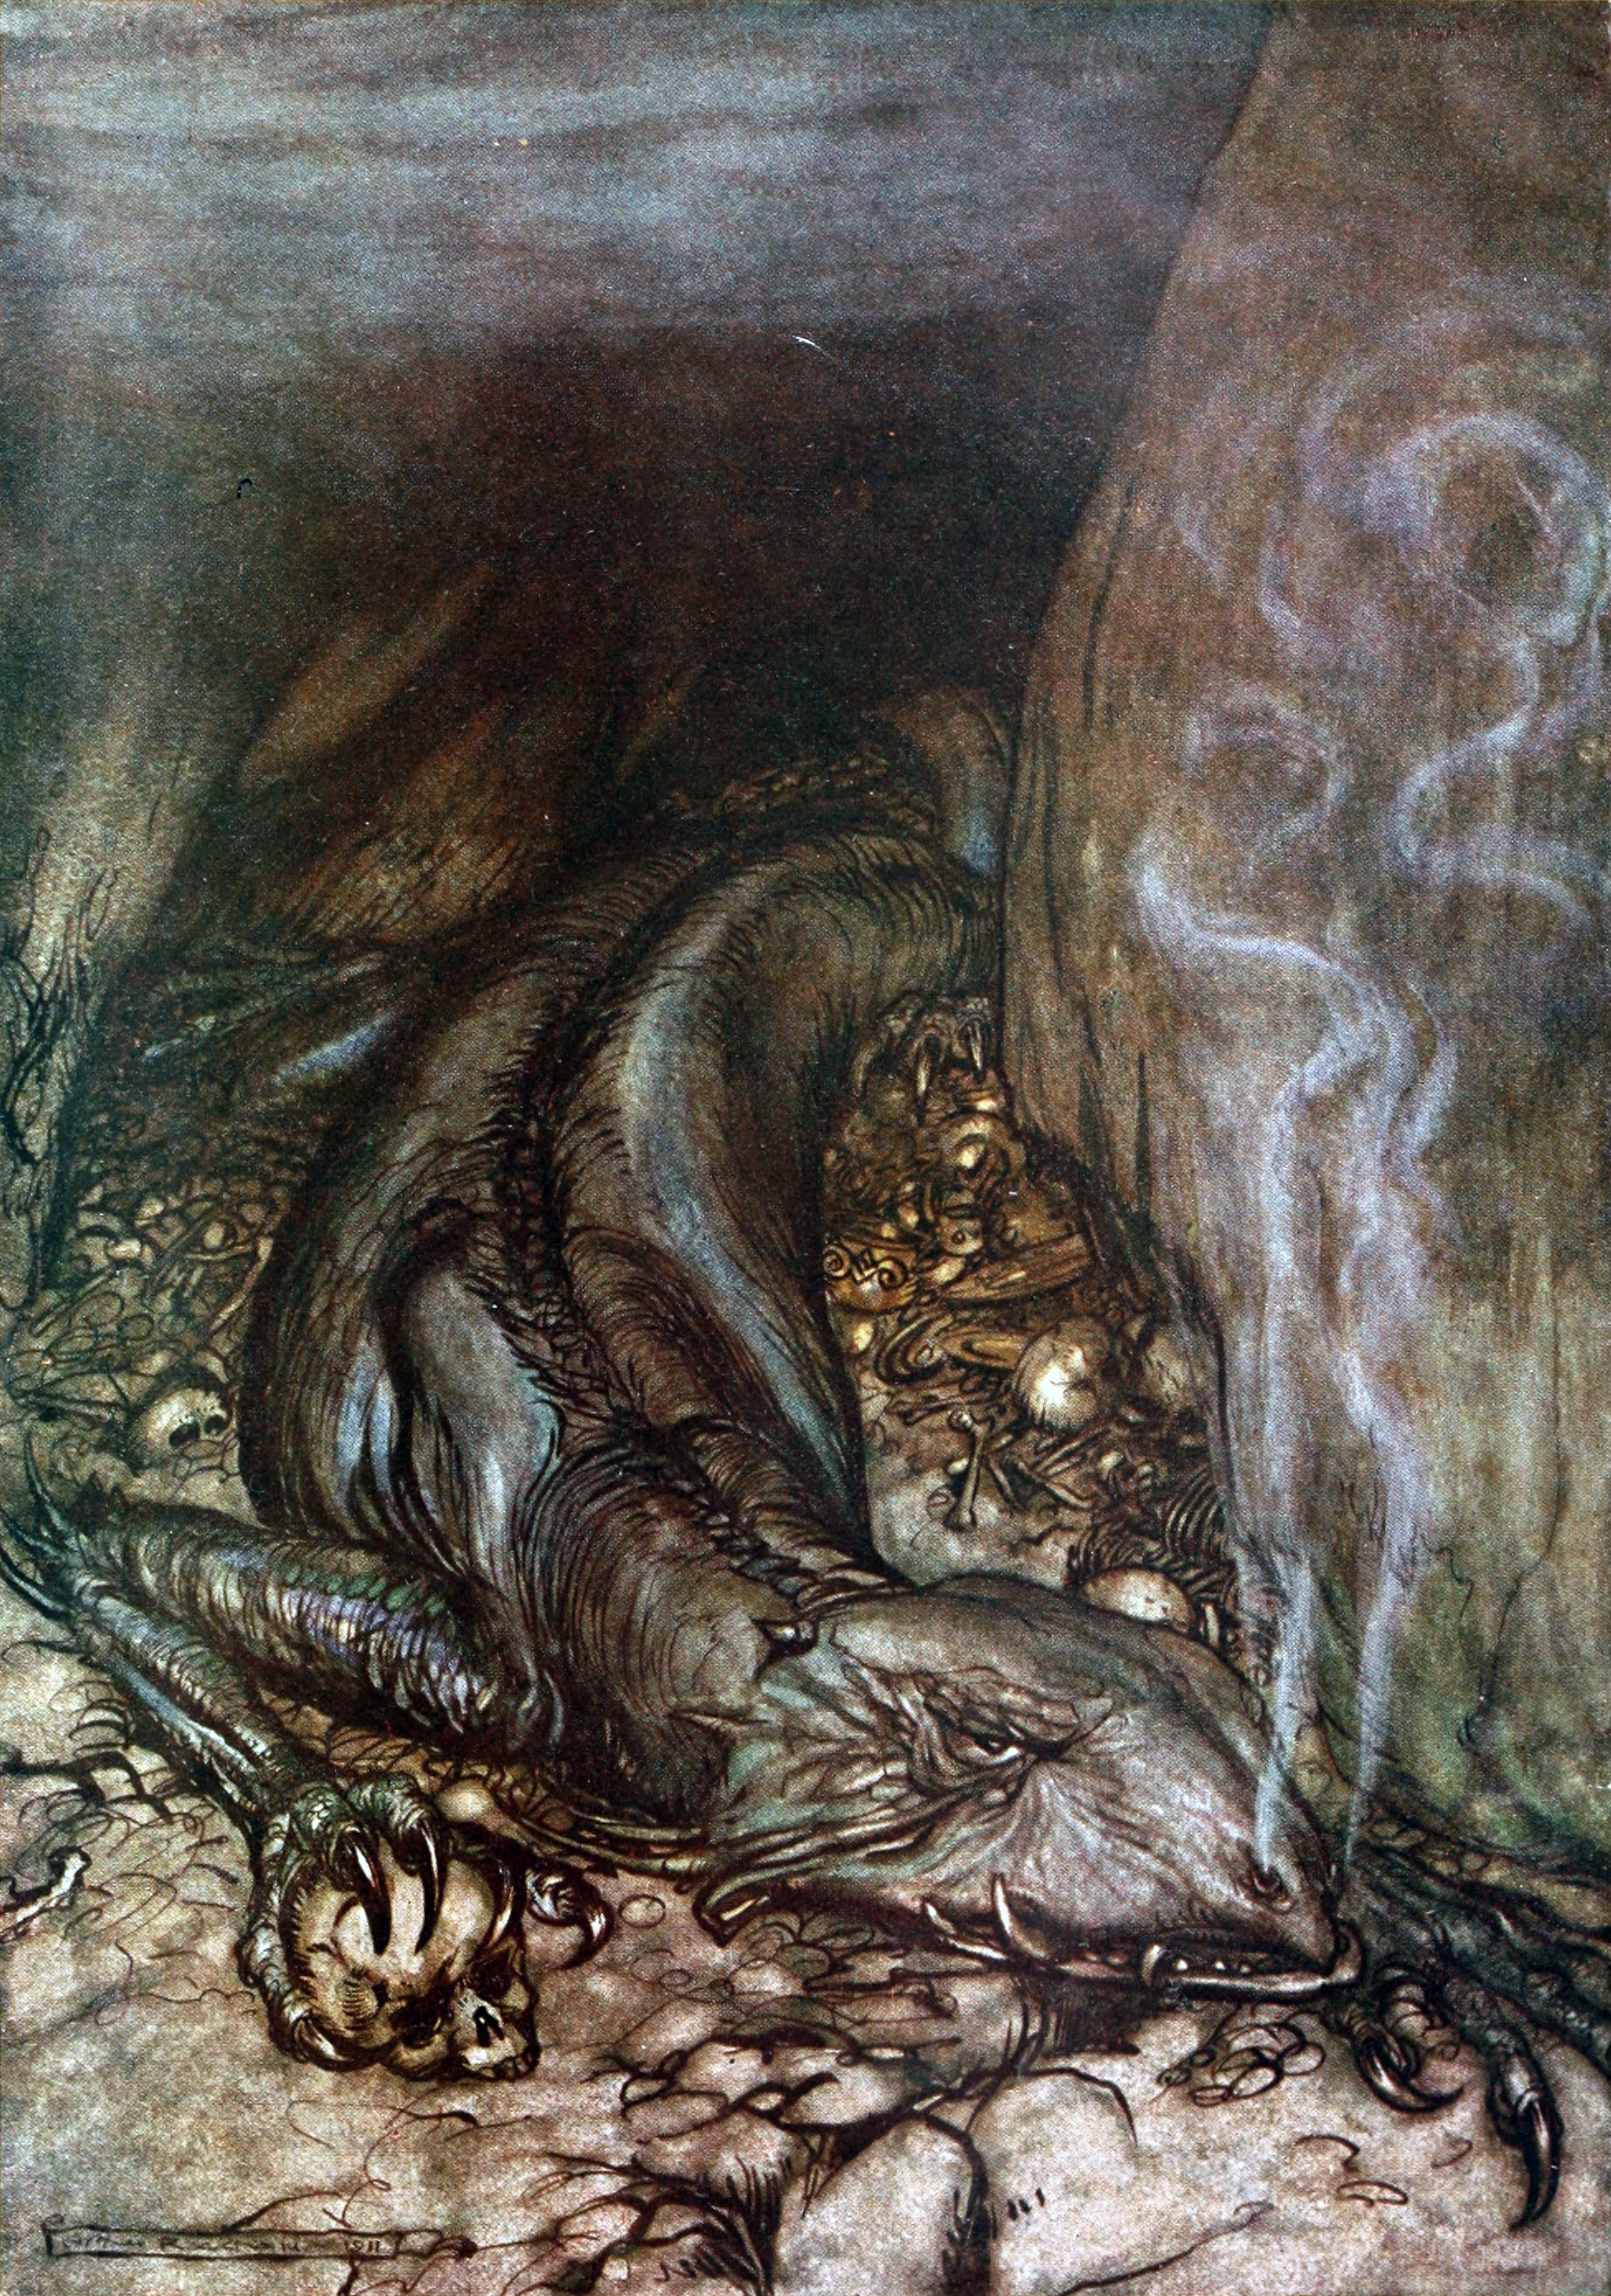 http://upload.wikimedia.org/wikipedia/commons/9/9b/Siegfried_and_the_Twilight_of_the_Gods_p_022.jpg